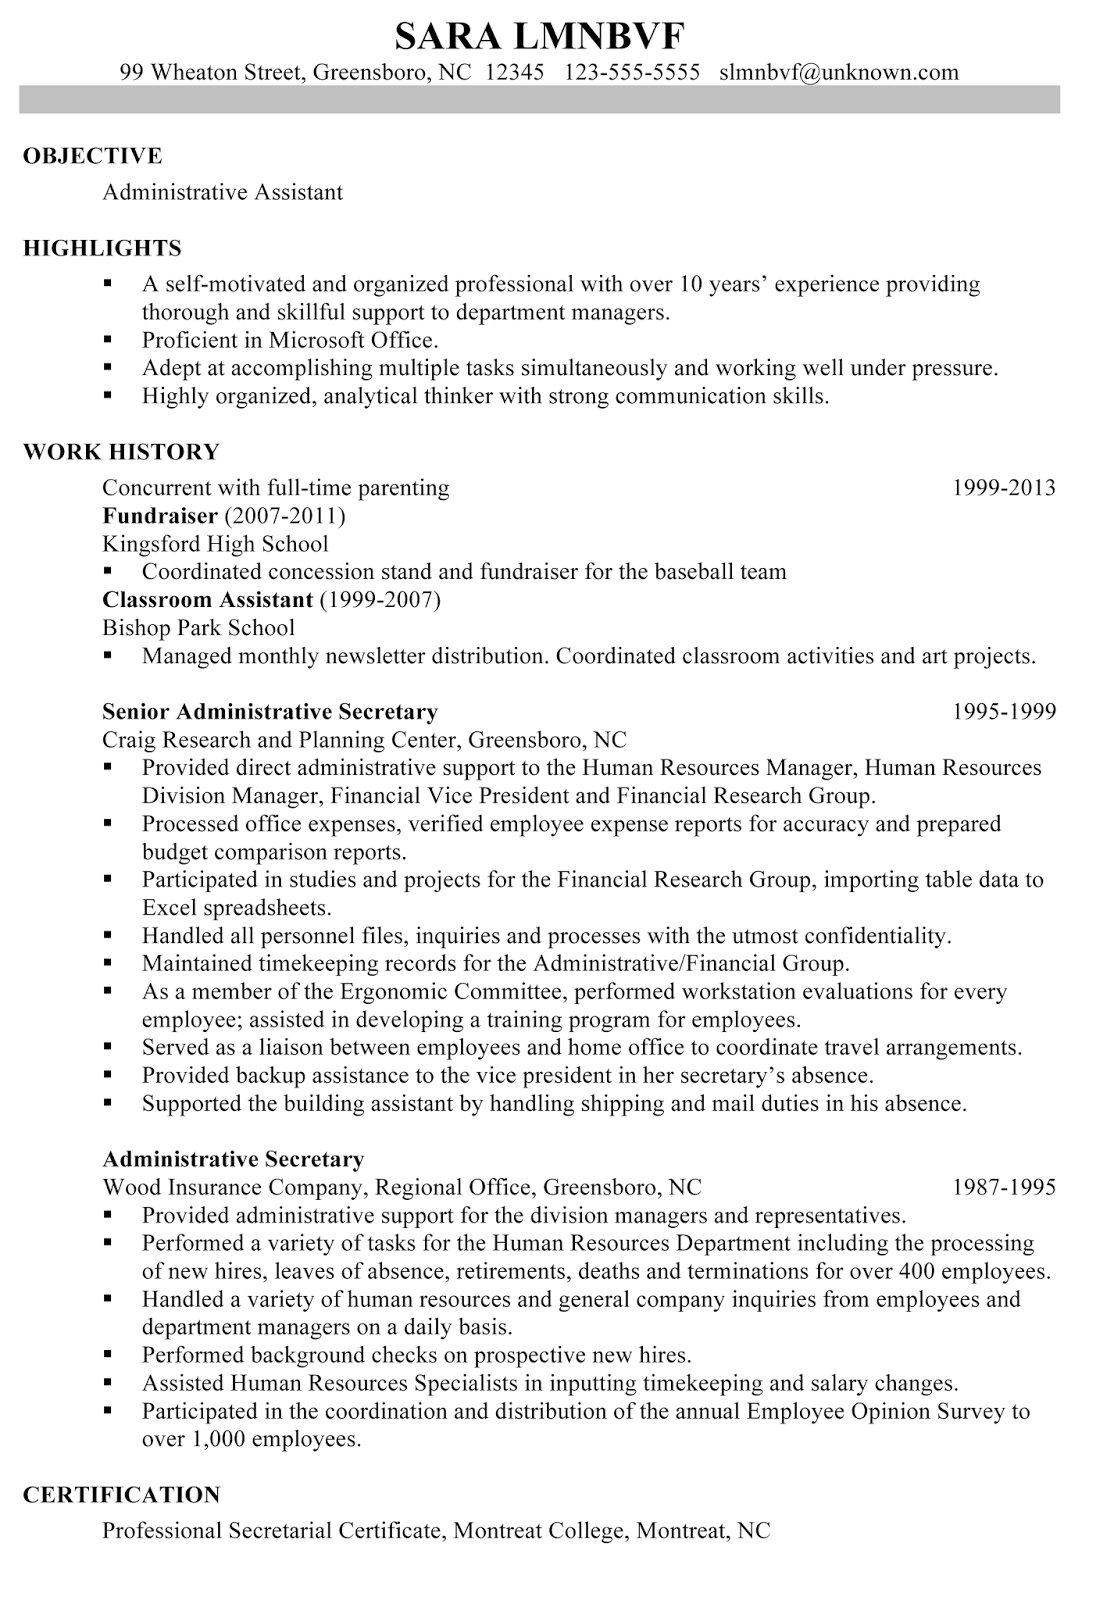 Qualifications For Resume resume one general how to write brefash resume resume professional summary examples accounting resume how to write a qualifications summary on a resume Sales Qualifications Resume Resume Skill Summary